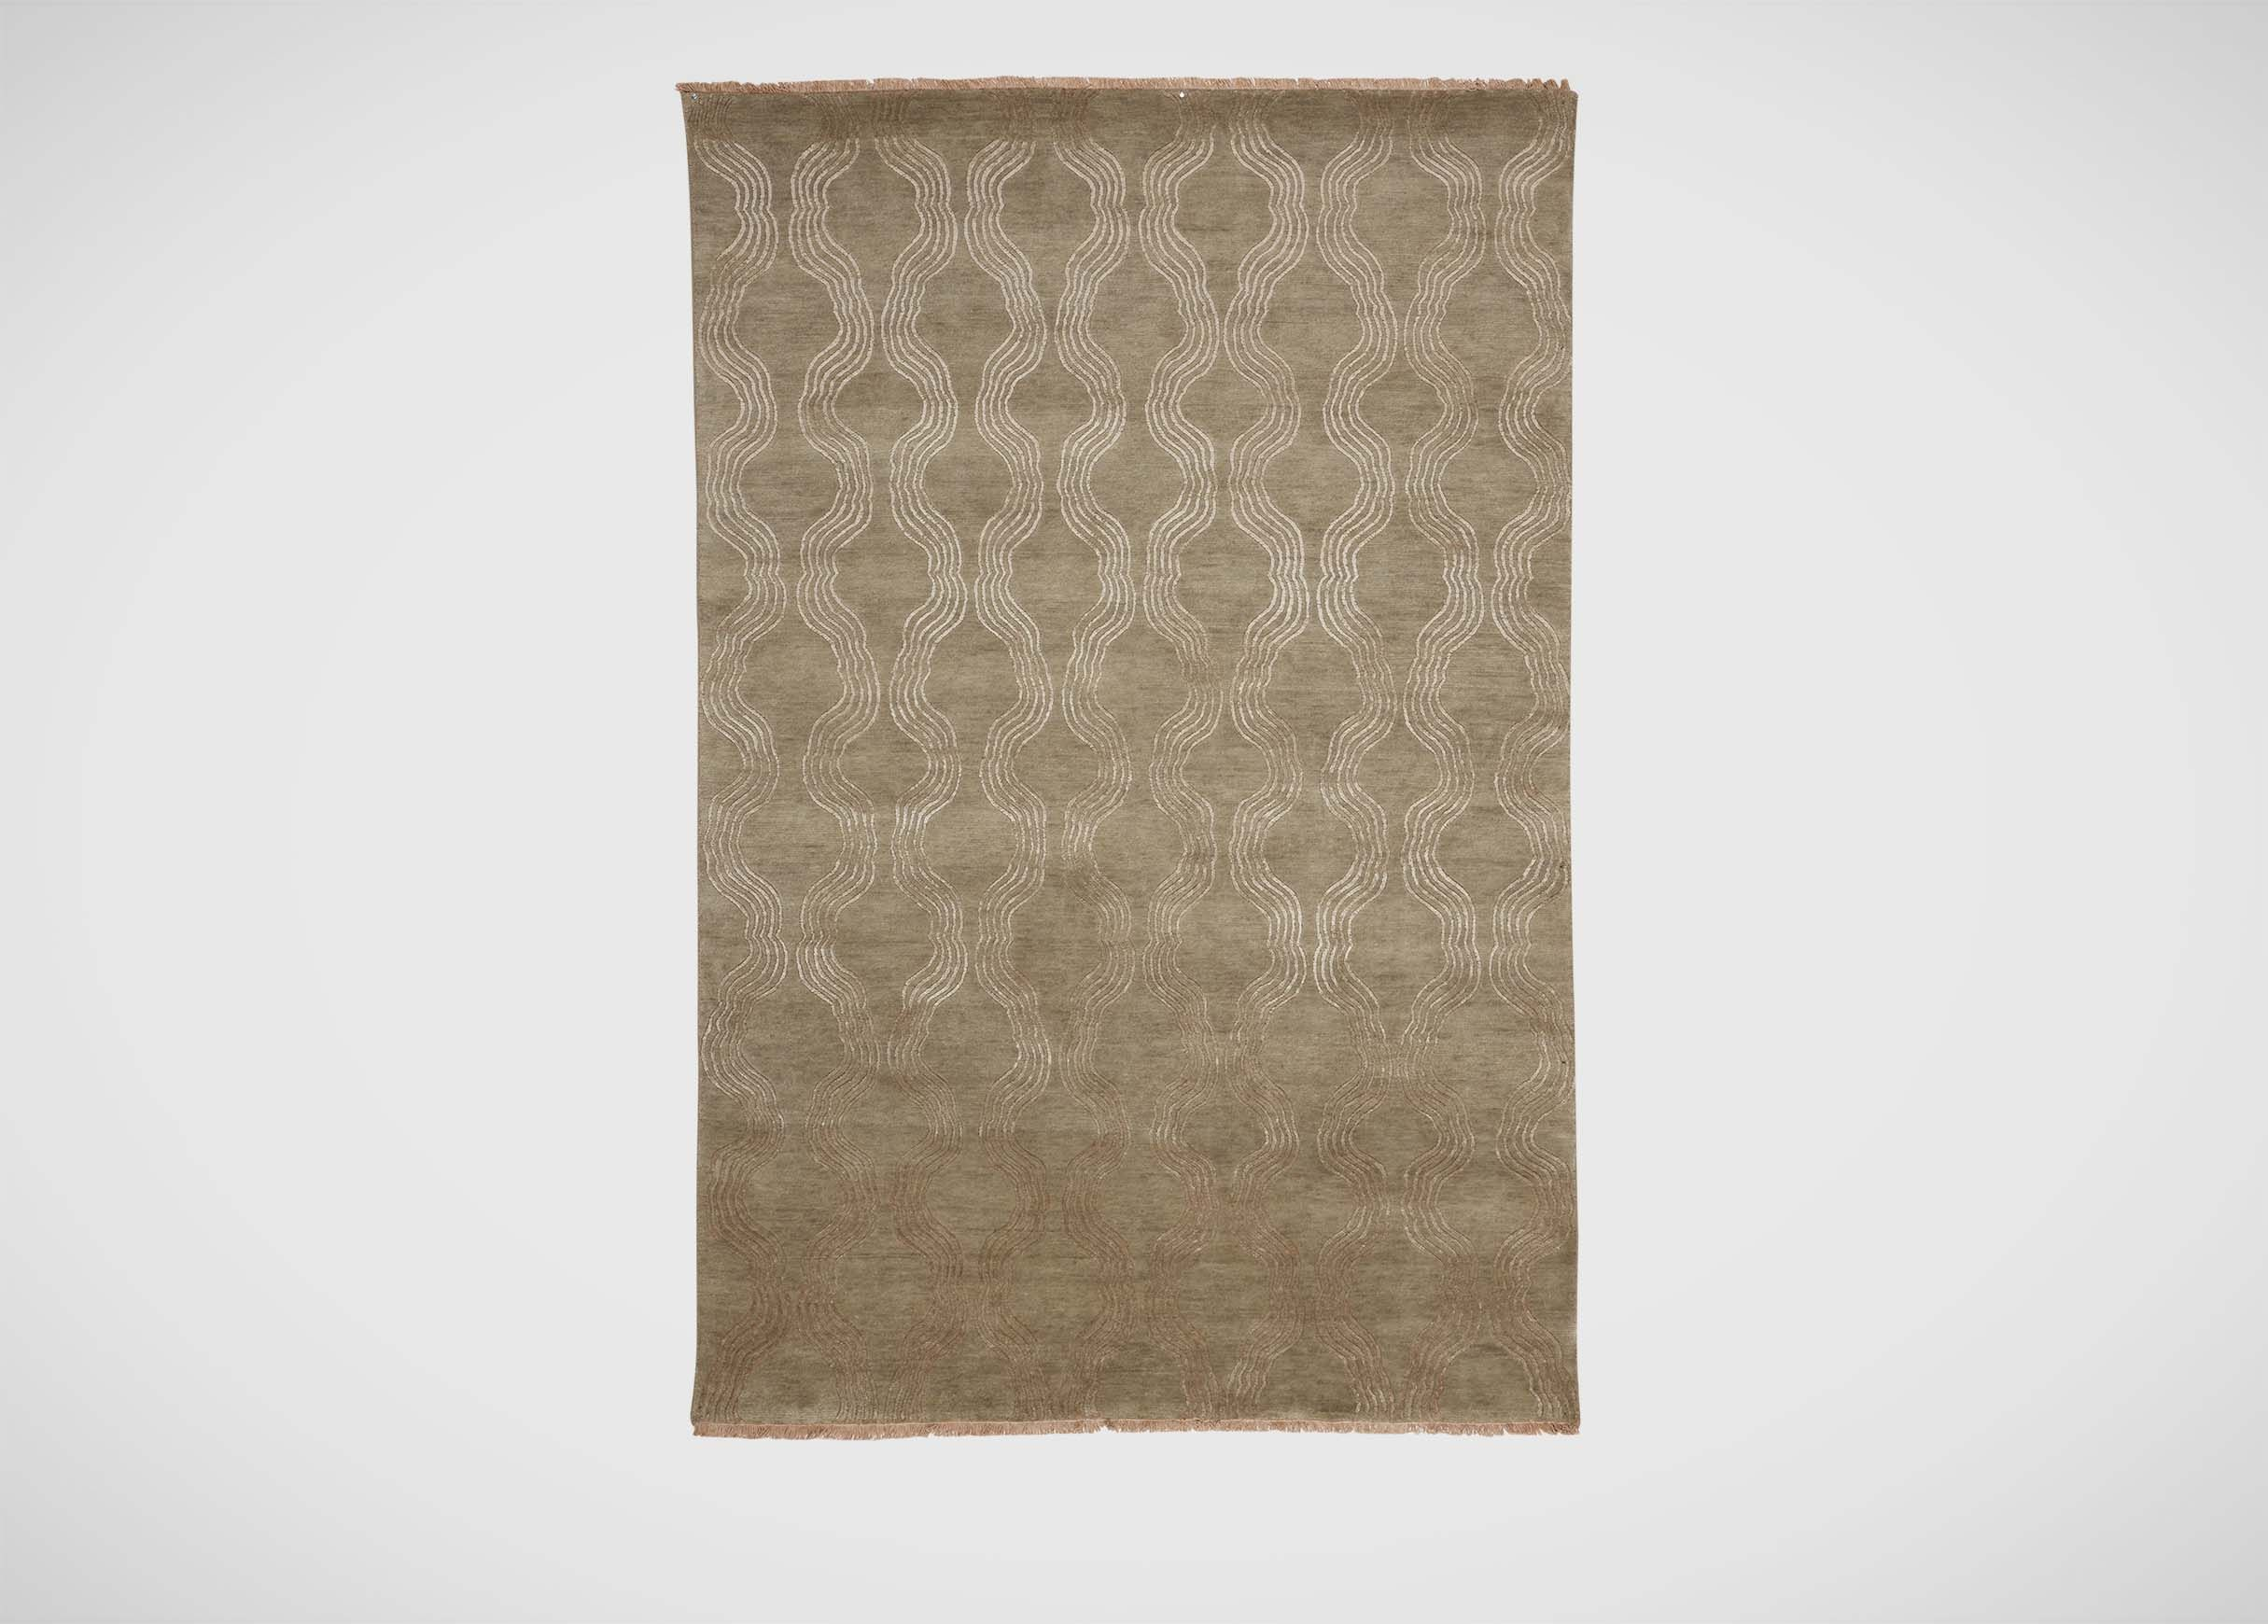 Shop Rugs Drapery Clearance Ethan Allen Rugs Clearance Rugs Drapery